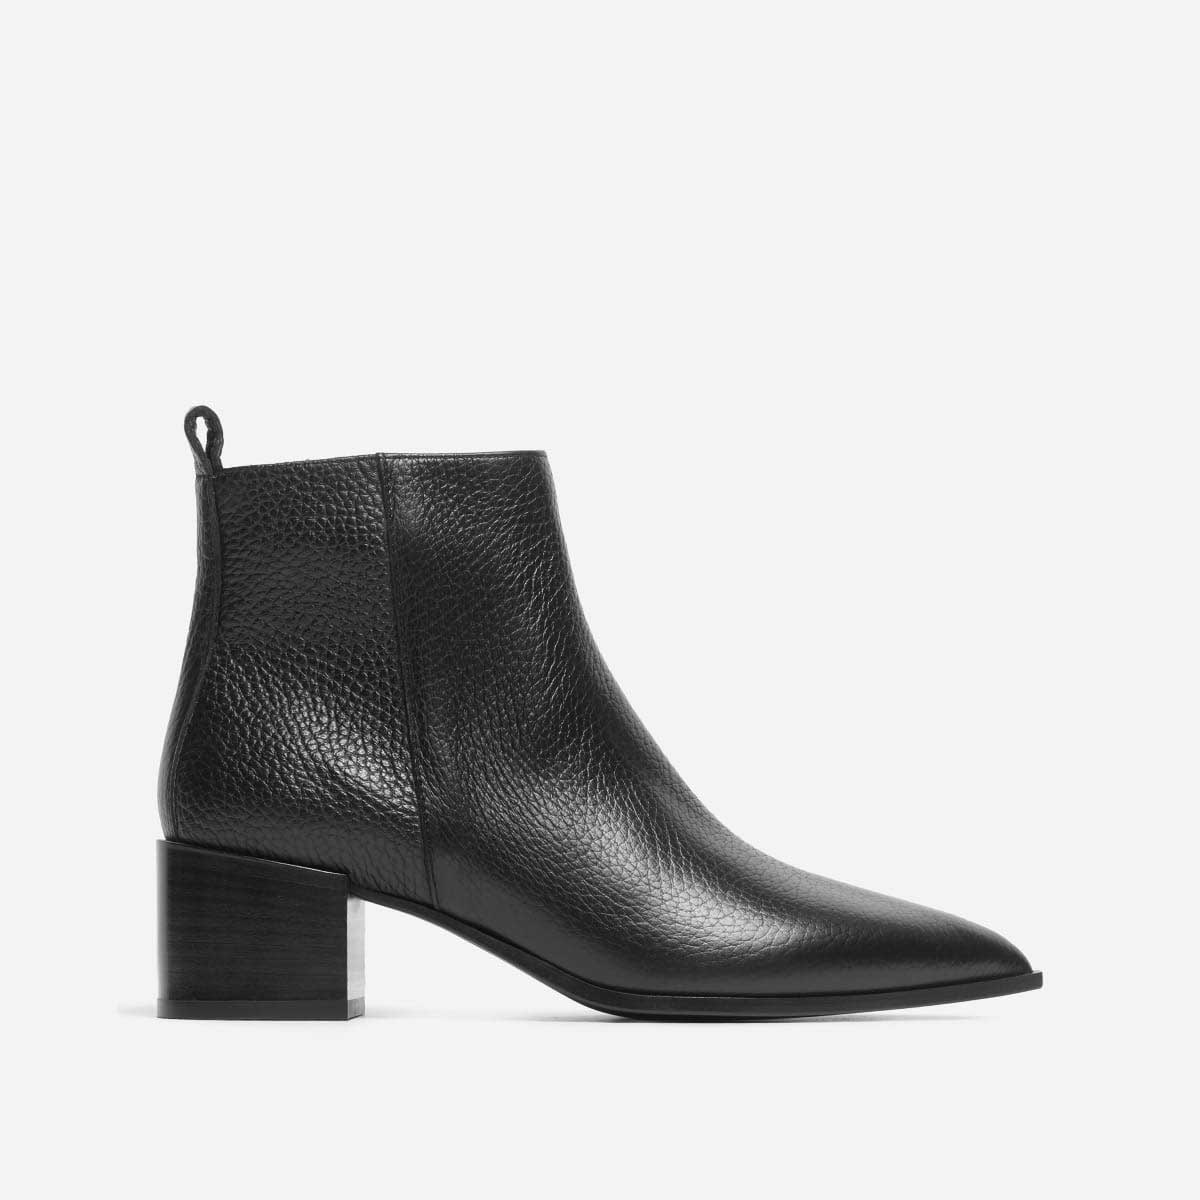 Most-Comfortable-Boots-Everlane